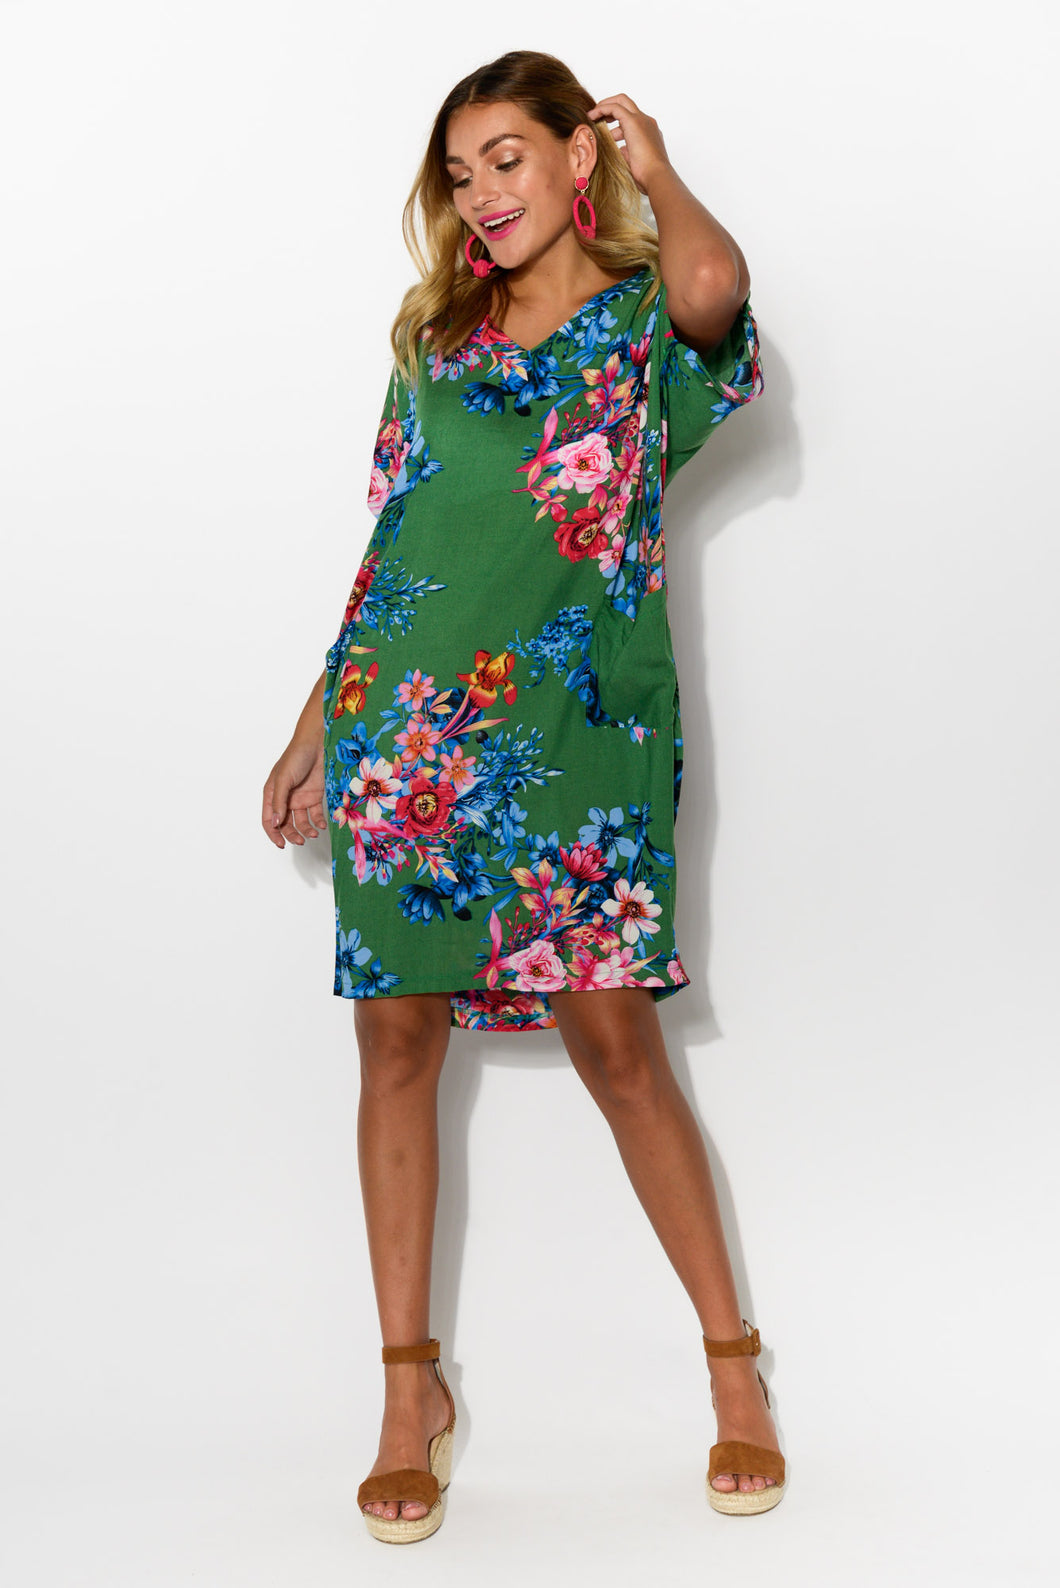 Iris Green Floral Drape Tee Dress - Blue Bungalow